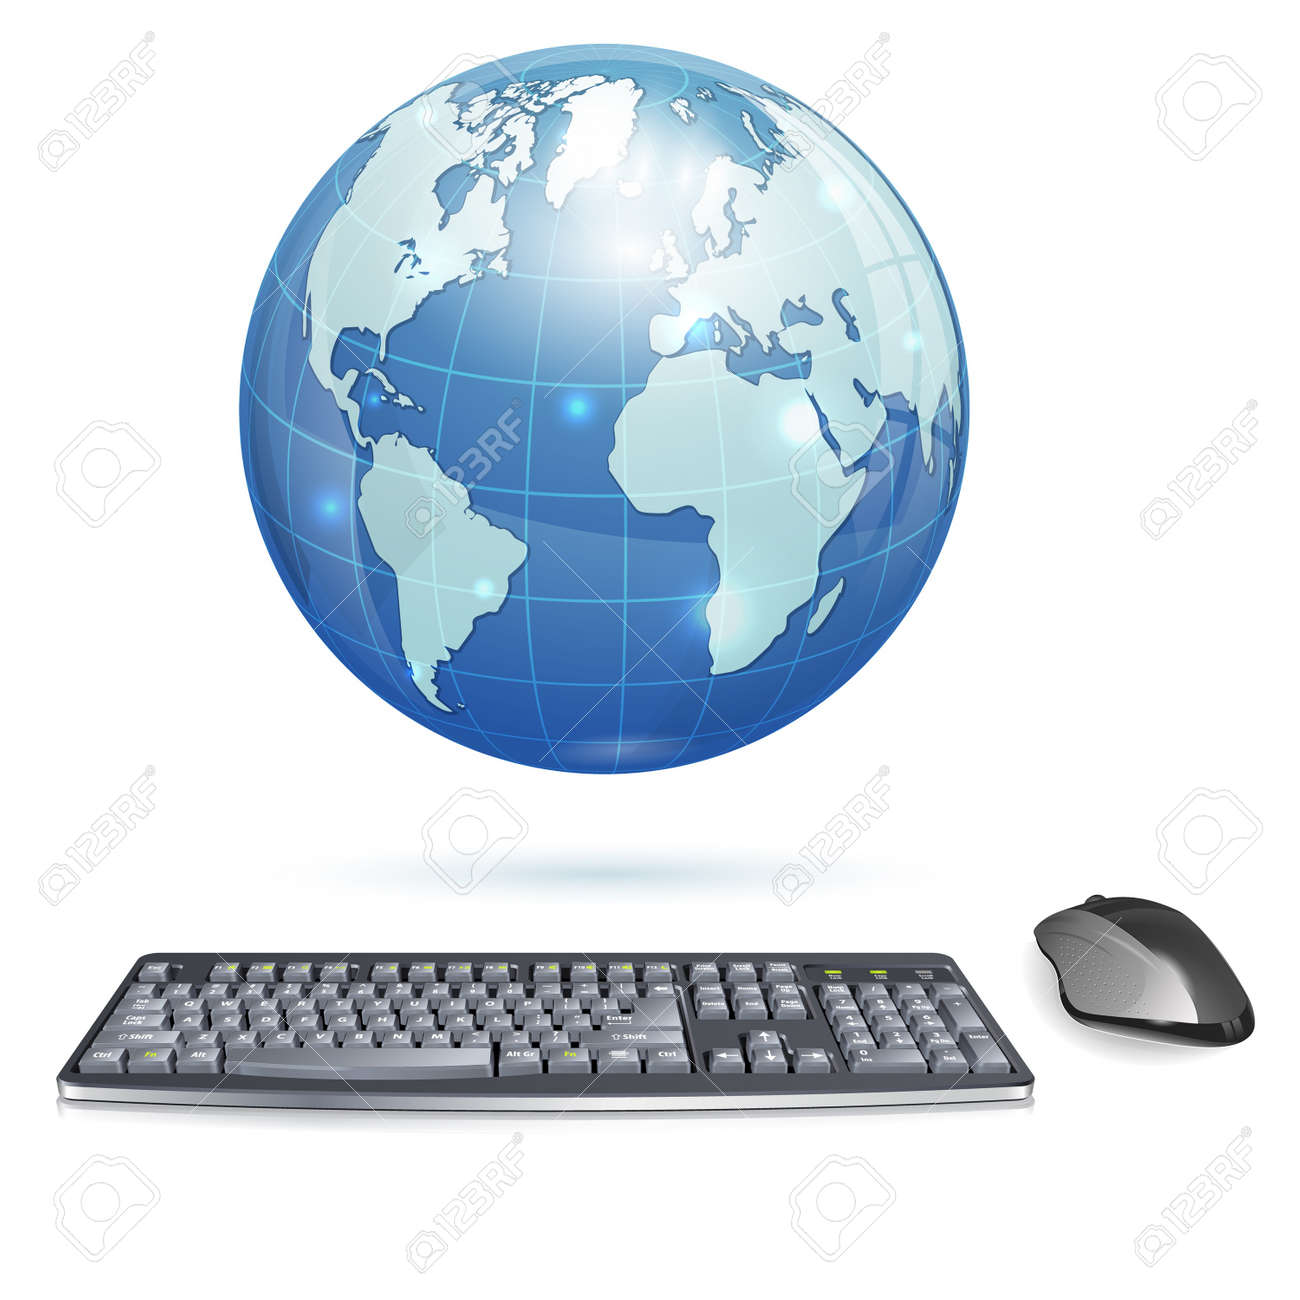 Computer Concept - Realistic 3D Keyboard and Mouse with Earth, isolated on white background, illustration Stock Vector - 18421737